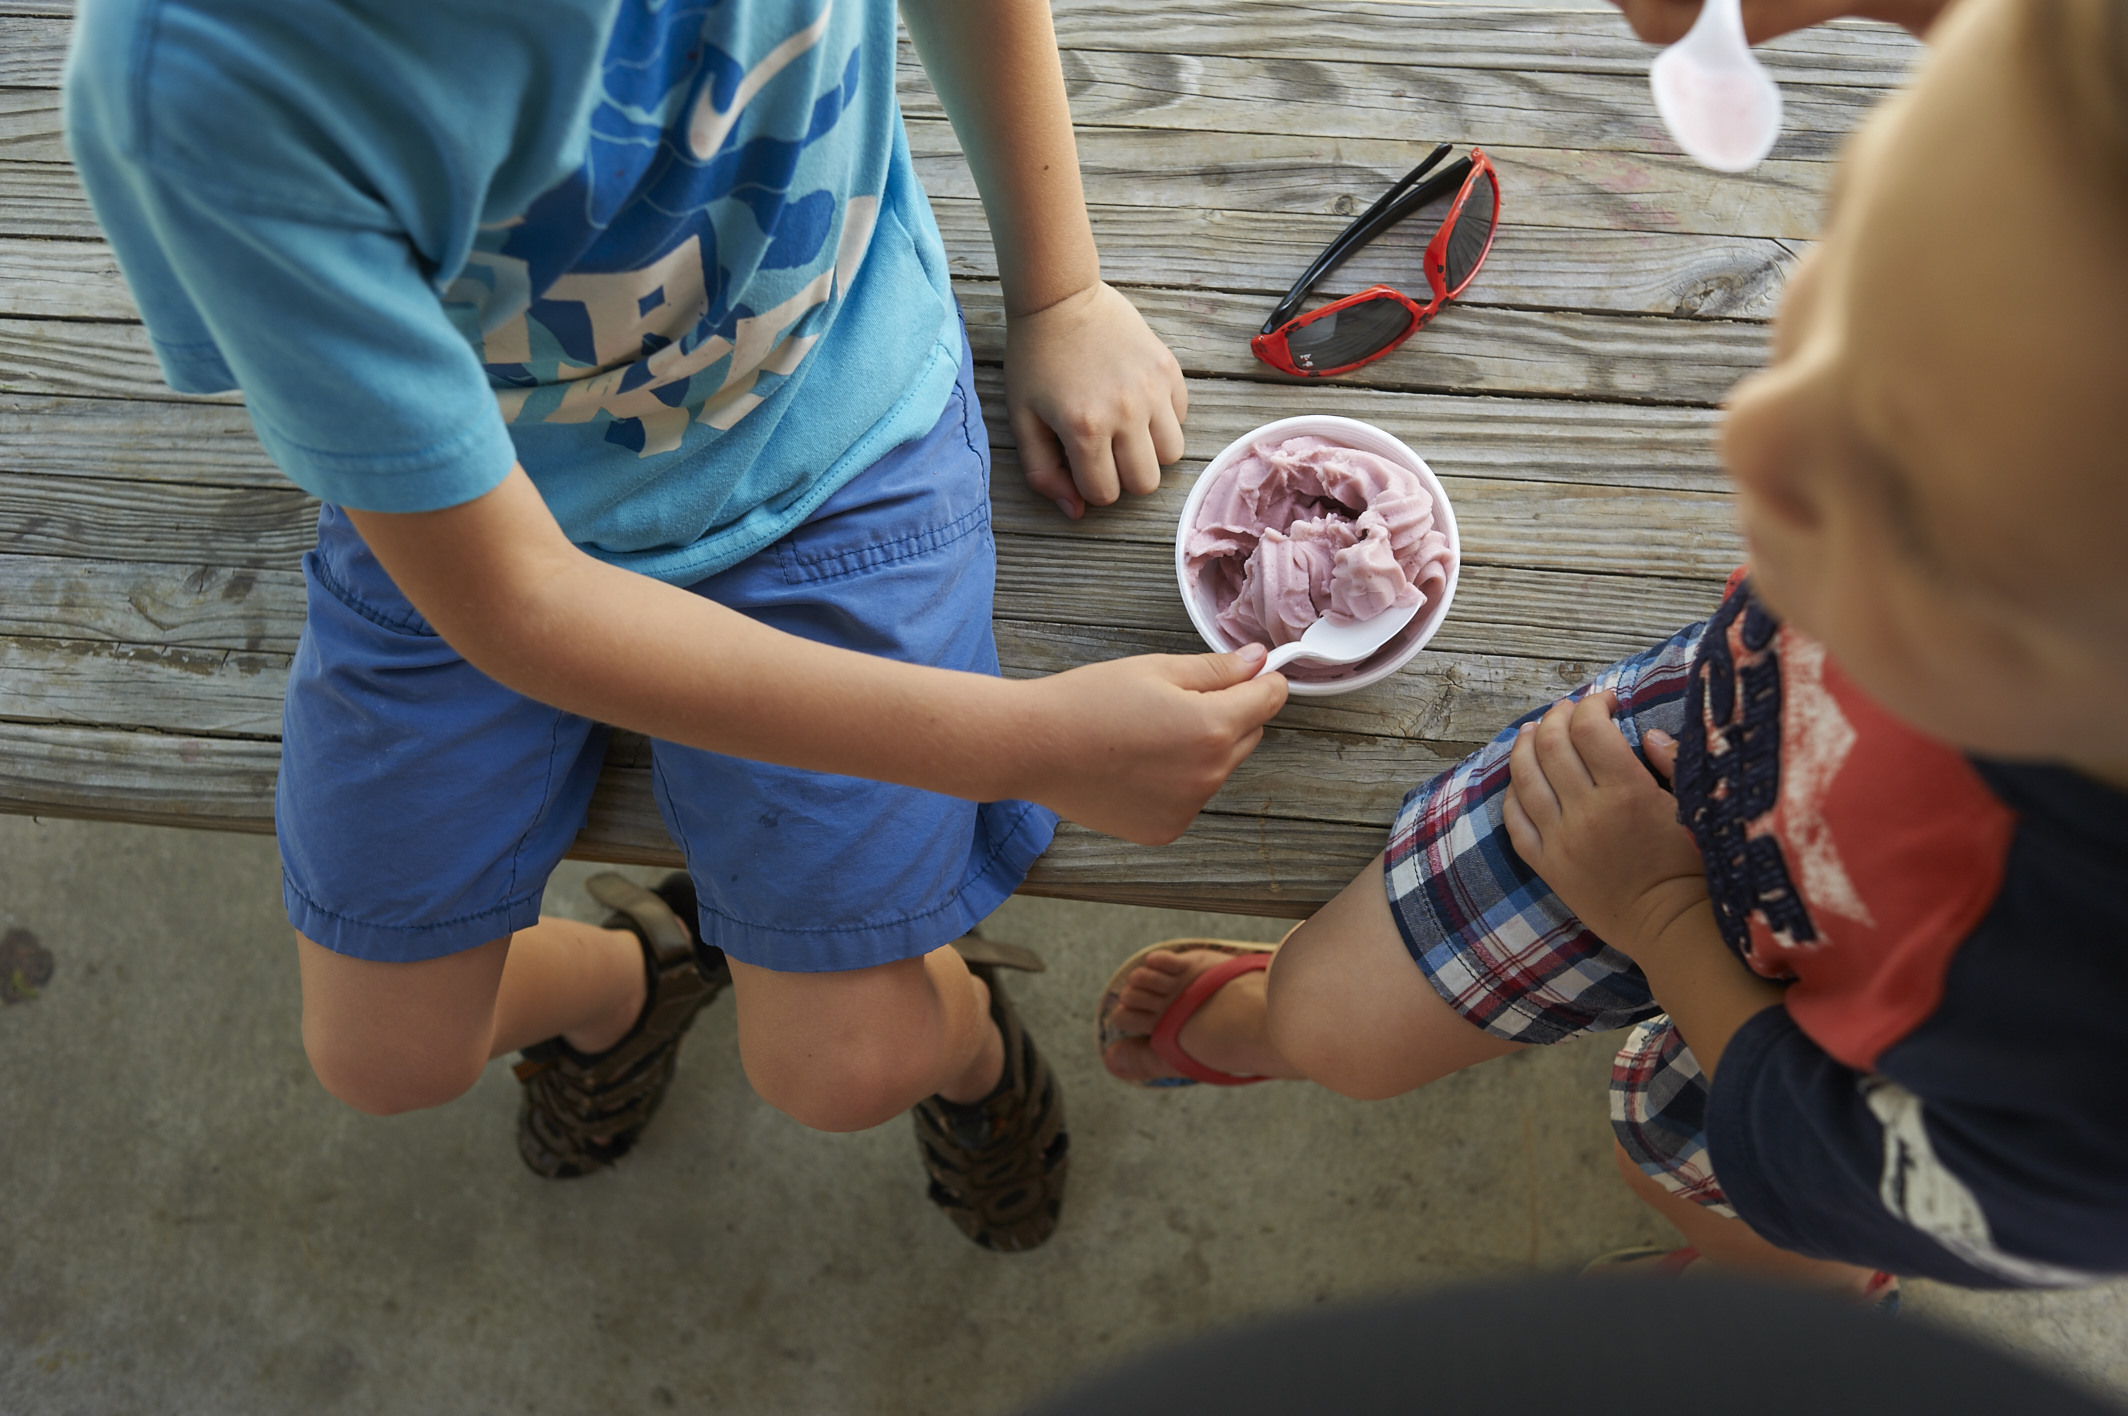 strawberry picking, lccl farm, rome, GA, family, lifestyle photography, its the everyday, homemade ice-cream, boys, motherhood